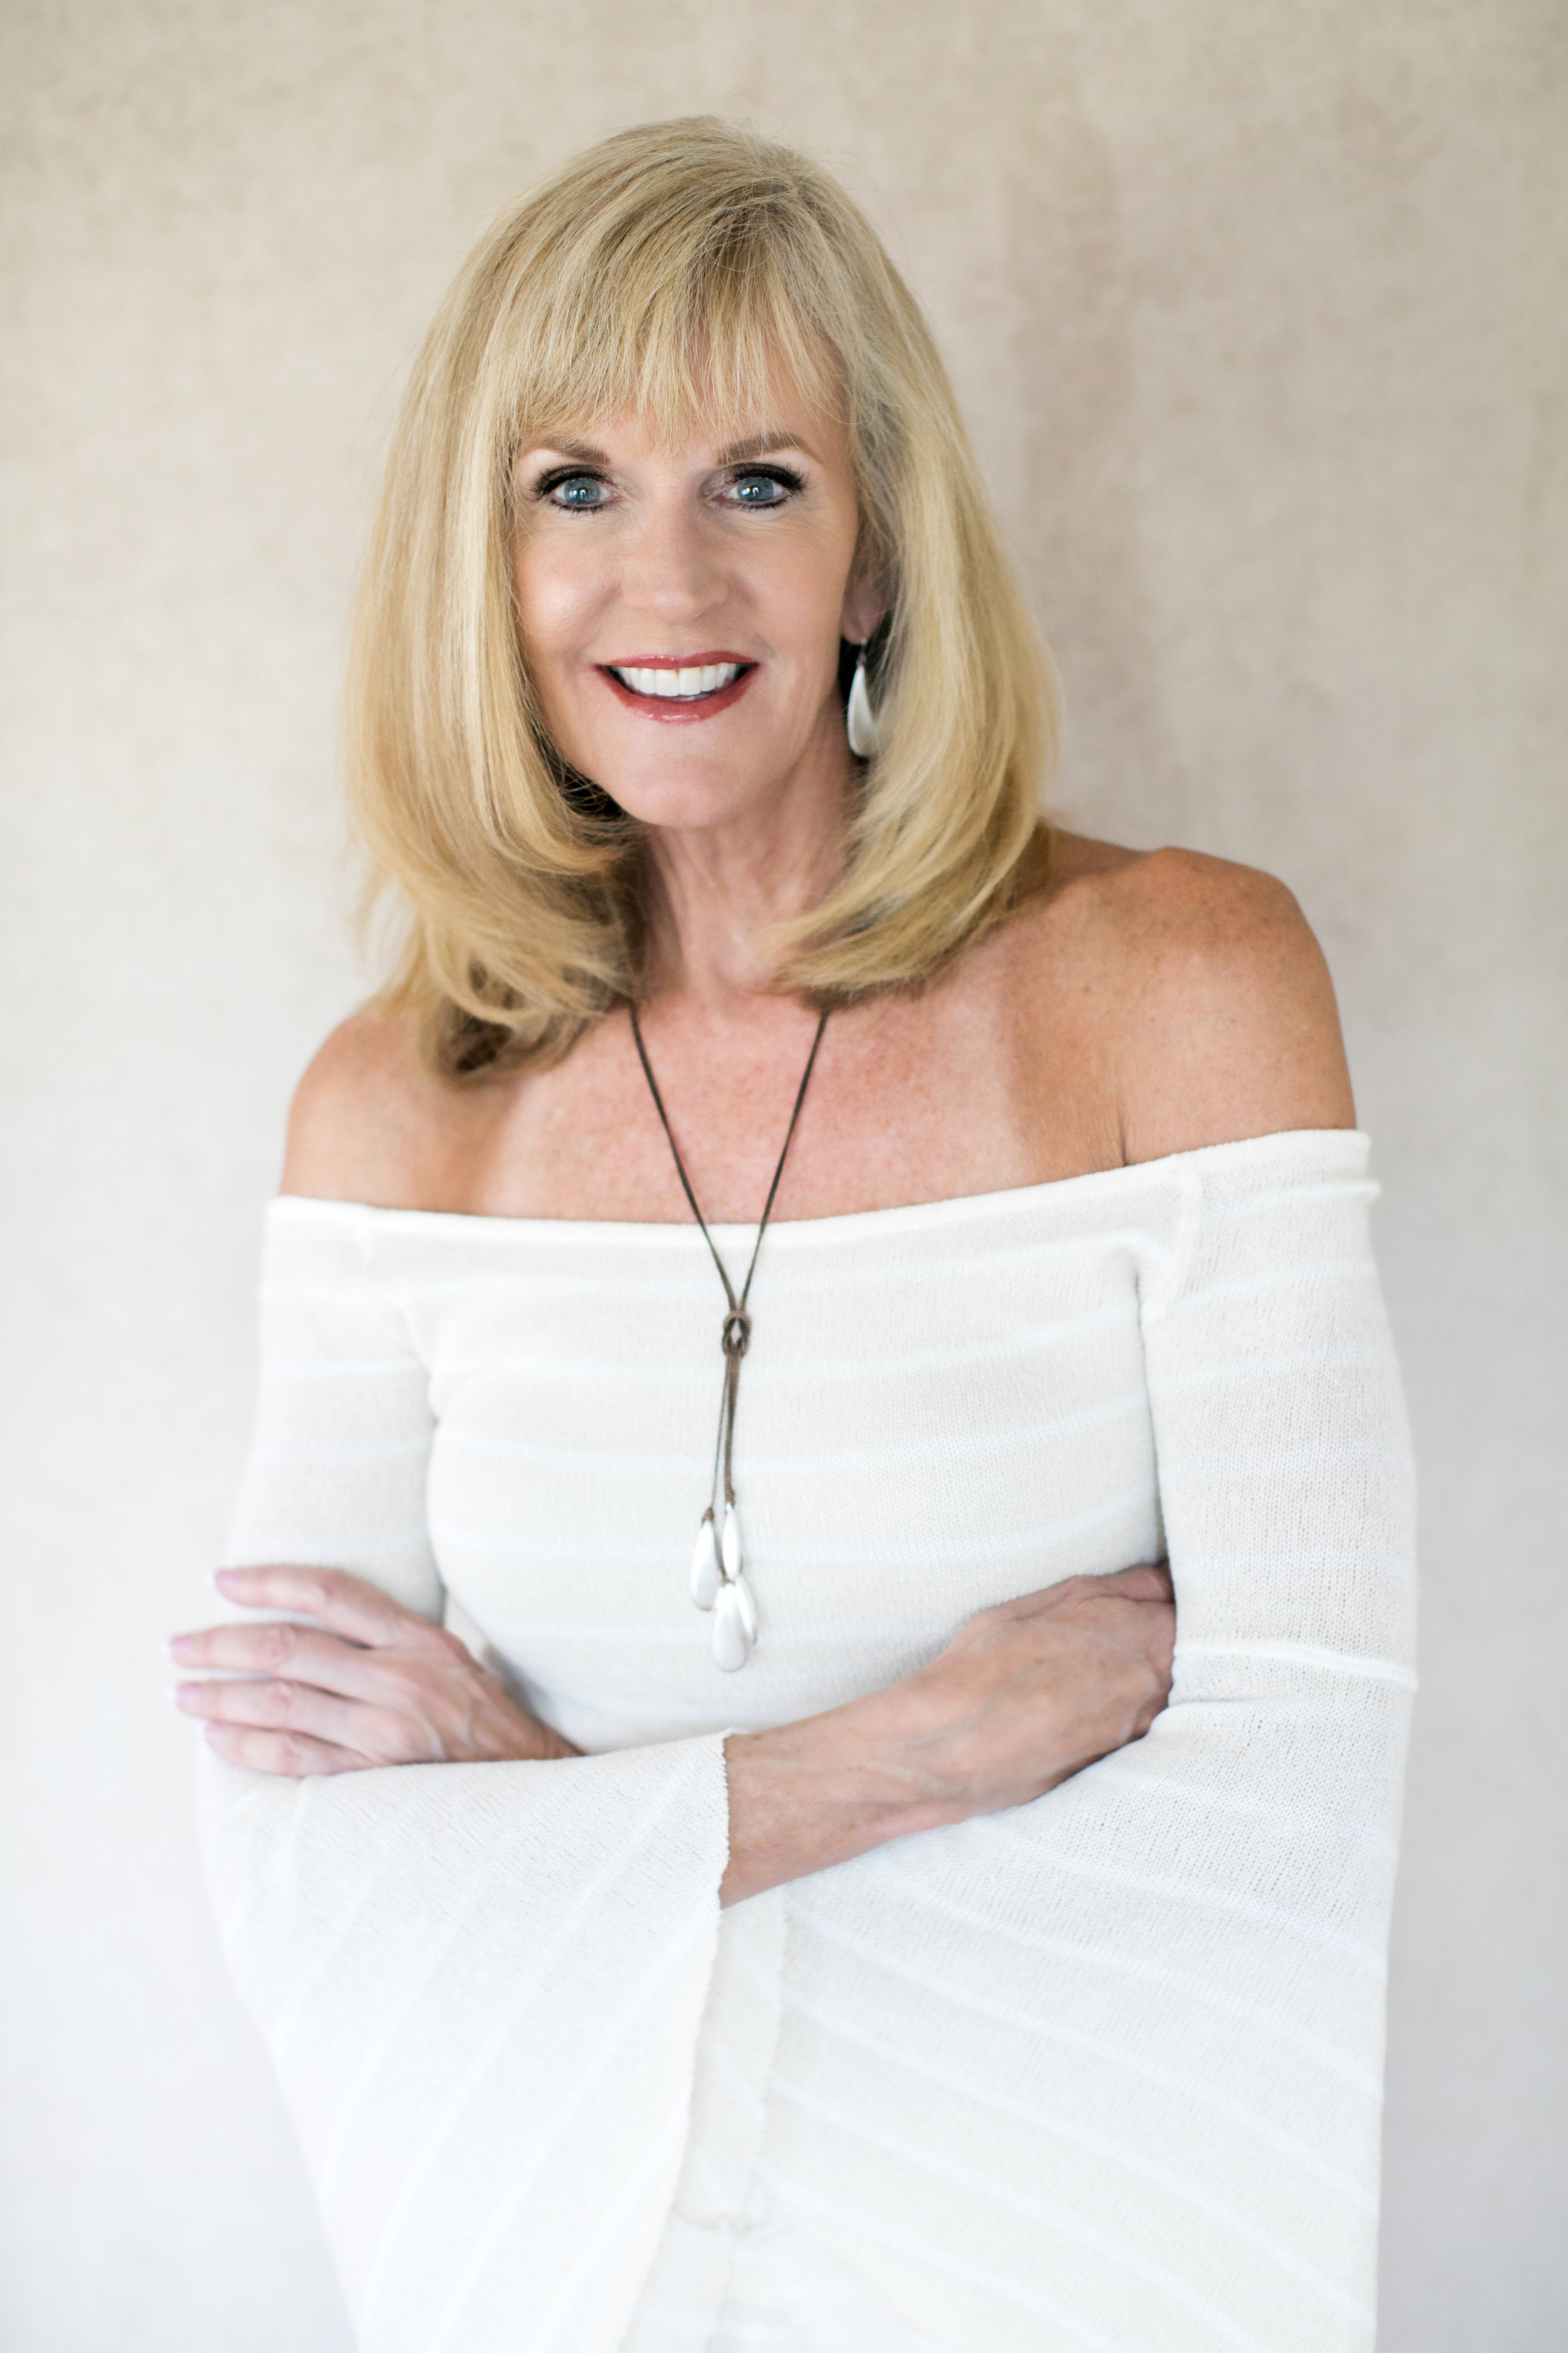 - What You Receive:As one of my '50 OVER 50' women, you will receive a wonderful package which includes:• Pre-consultation with me to discuss how you want to be photographed including a style consultation.• Hair and makeup on the day of the photo shoot (you will feel amazing!)• Fully guided professional photo shoot that you will truly enjoy.• A reviewing session where you can see all your beautiful photographs.• Inclusion in a Photo Book at the end of the projectOther conditions may apply.The project will be promoted in many ways so you'll need to be happy with…•Being interviewed by me before and after the photoshoot about being a woman over 50. This may include video interviews.•That interview being shared on my website and social media.•Your photo being included in the Photo Book.I will keep in touch with all participants throughout the project with updates, insights and information.